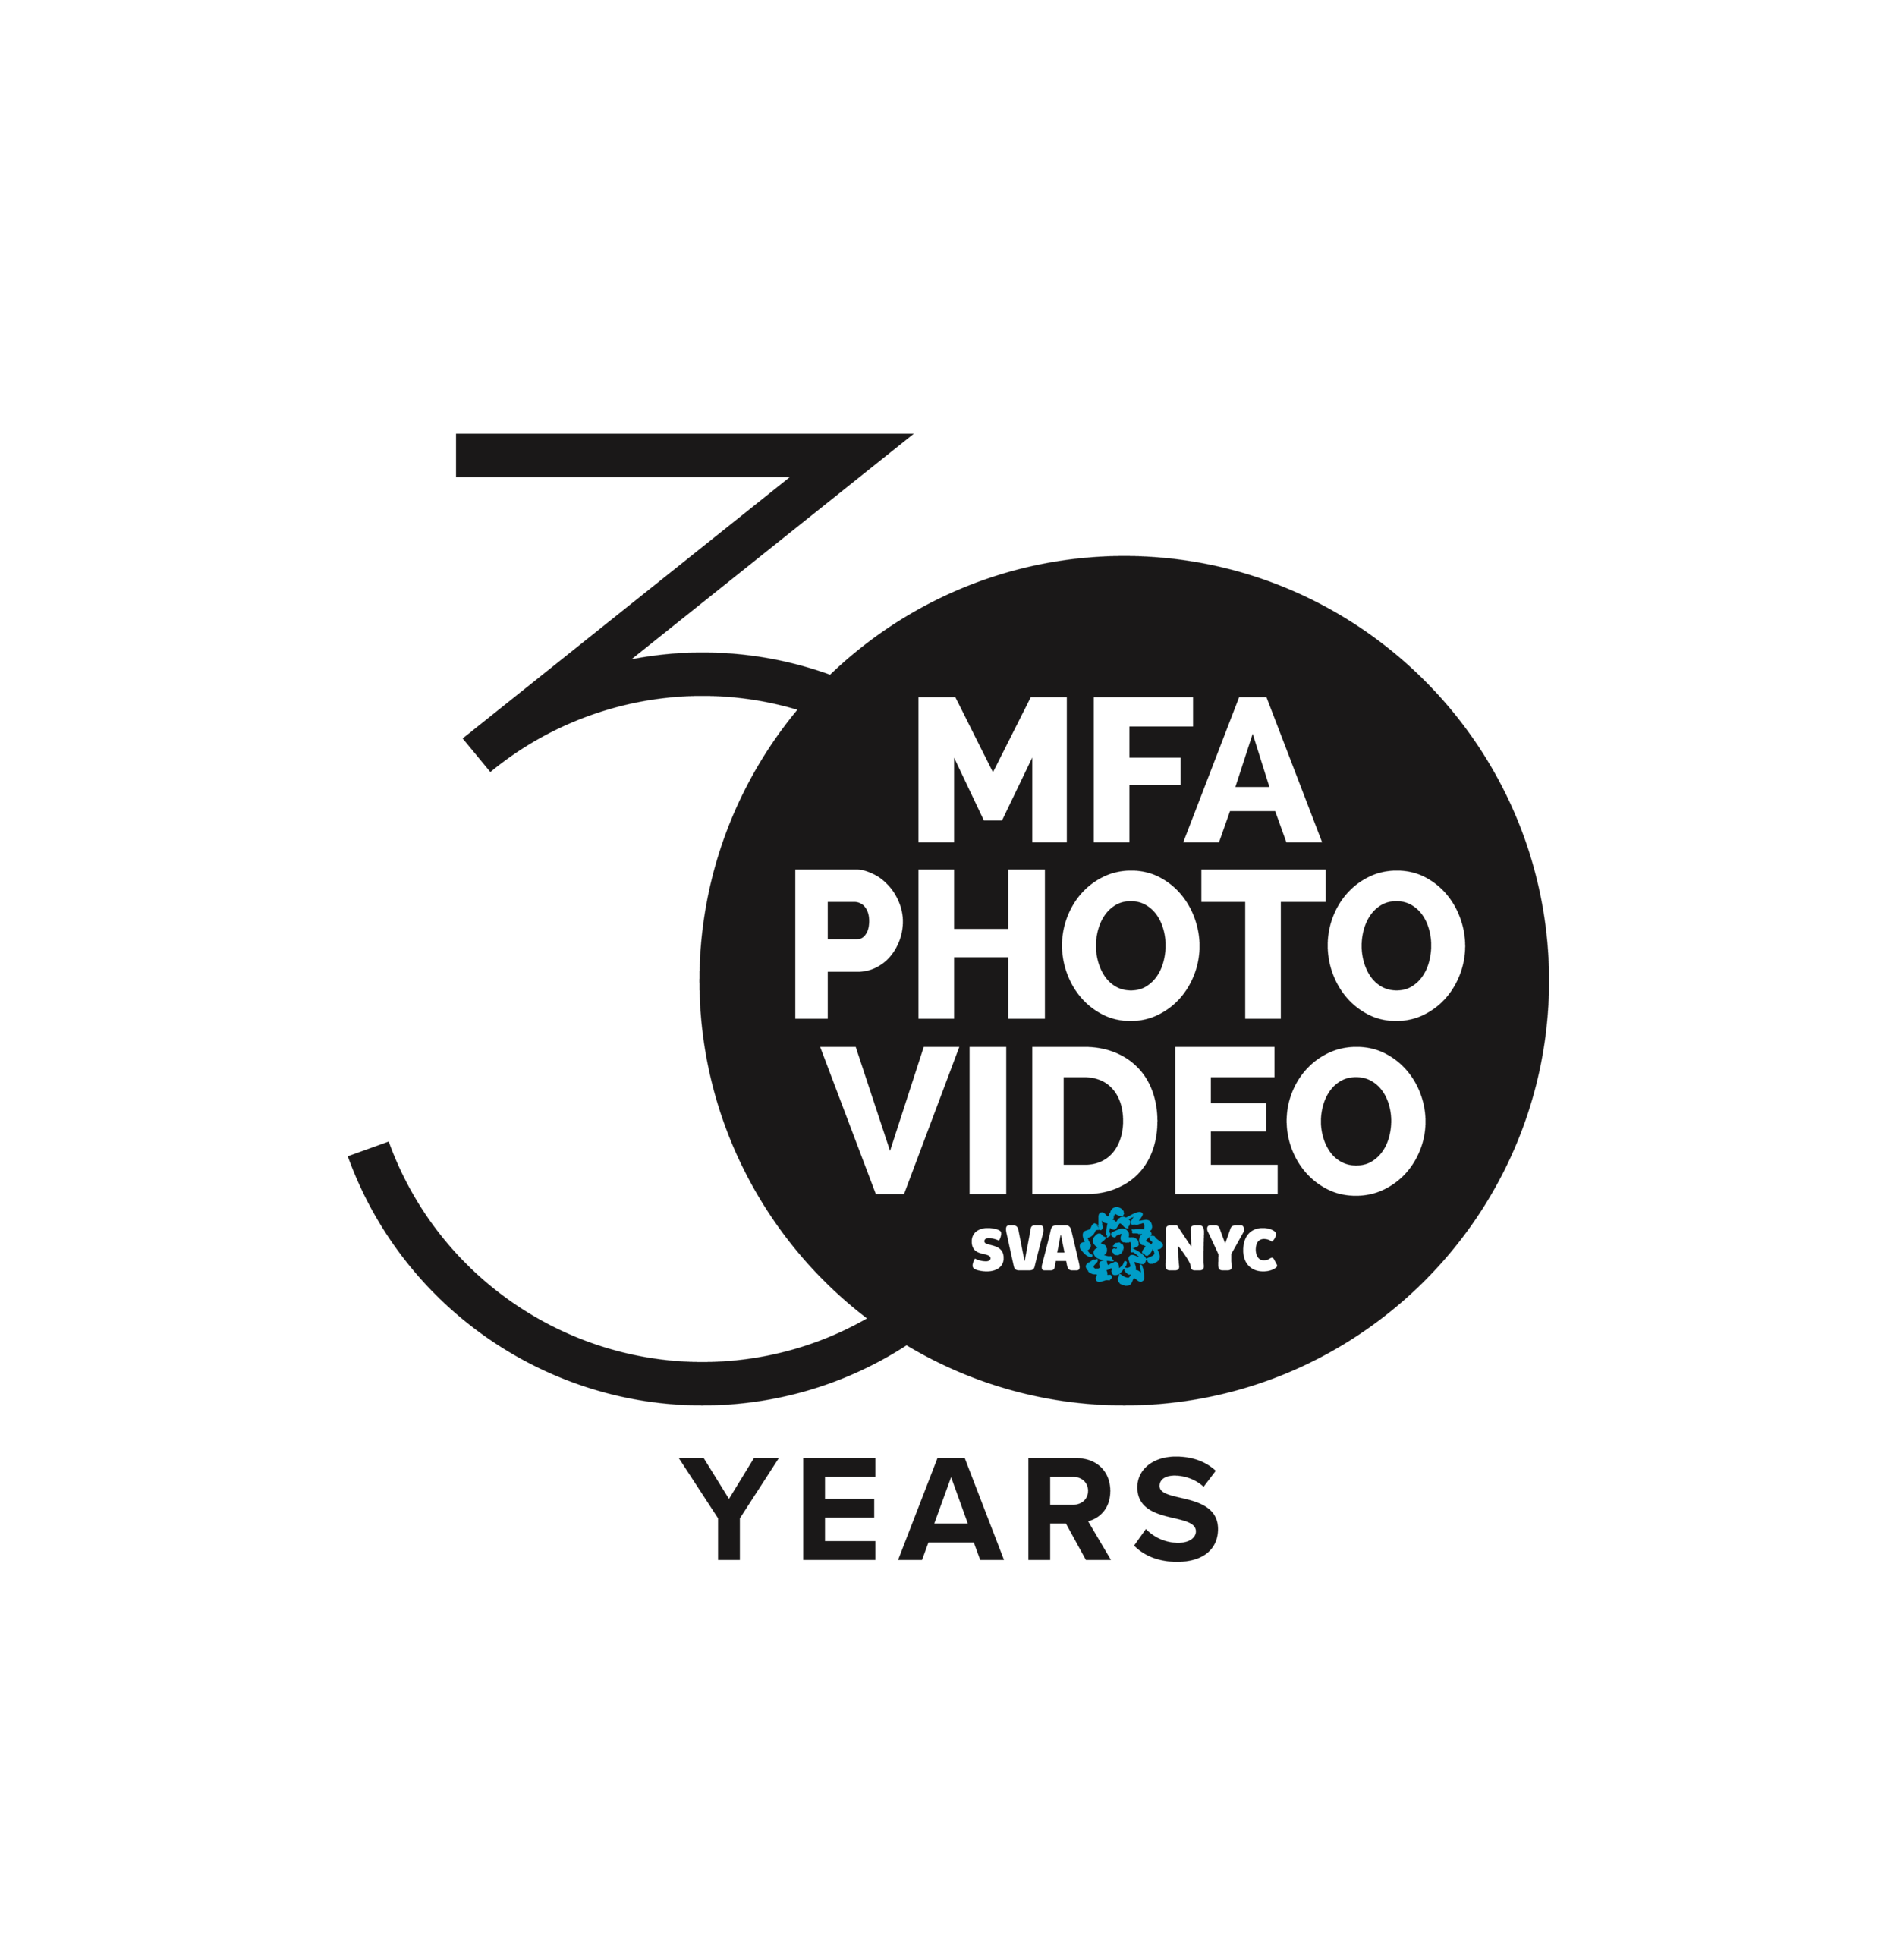 SVA-MFA-30YEARS-COLOR-bold-01 (1).png